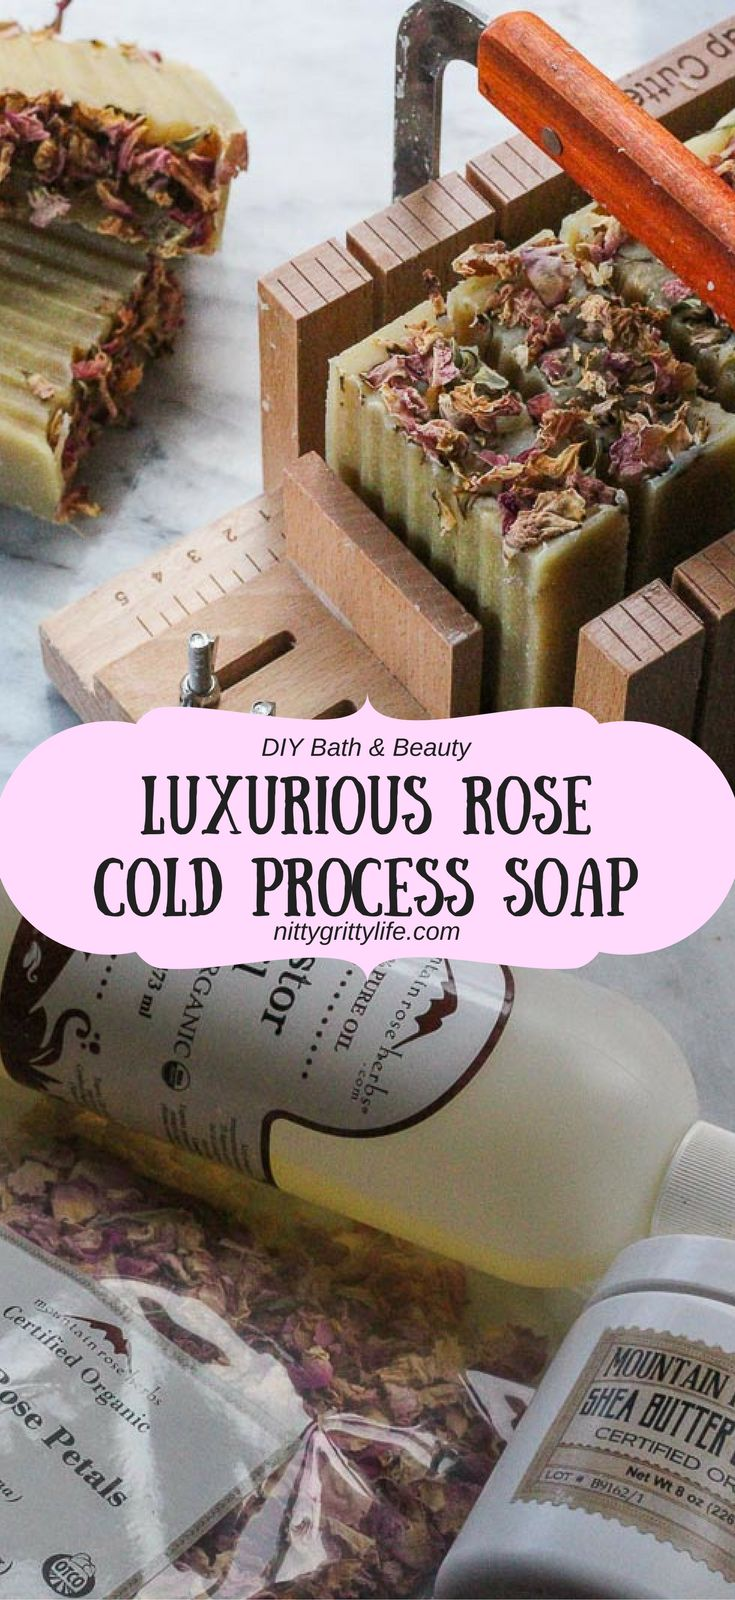 A perfect DIY project, this rose scented cold process soap recipe will result in a luxurious soap with a rich and gentle lather.